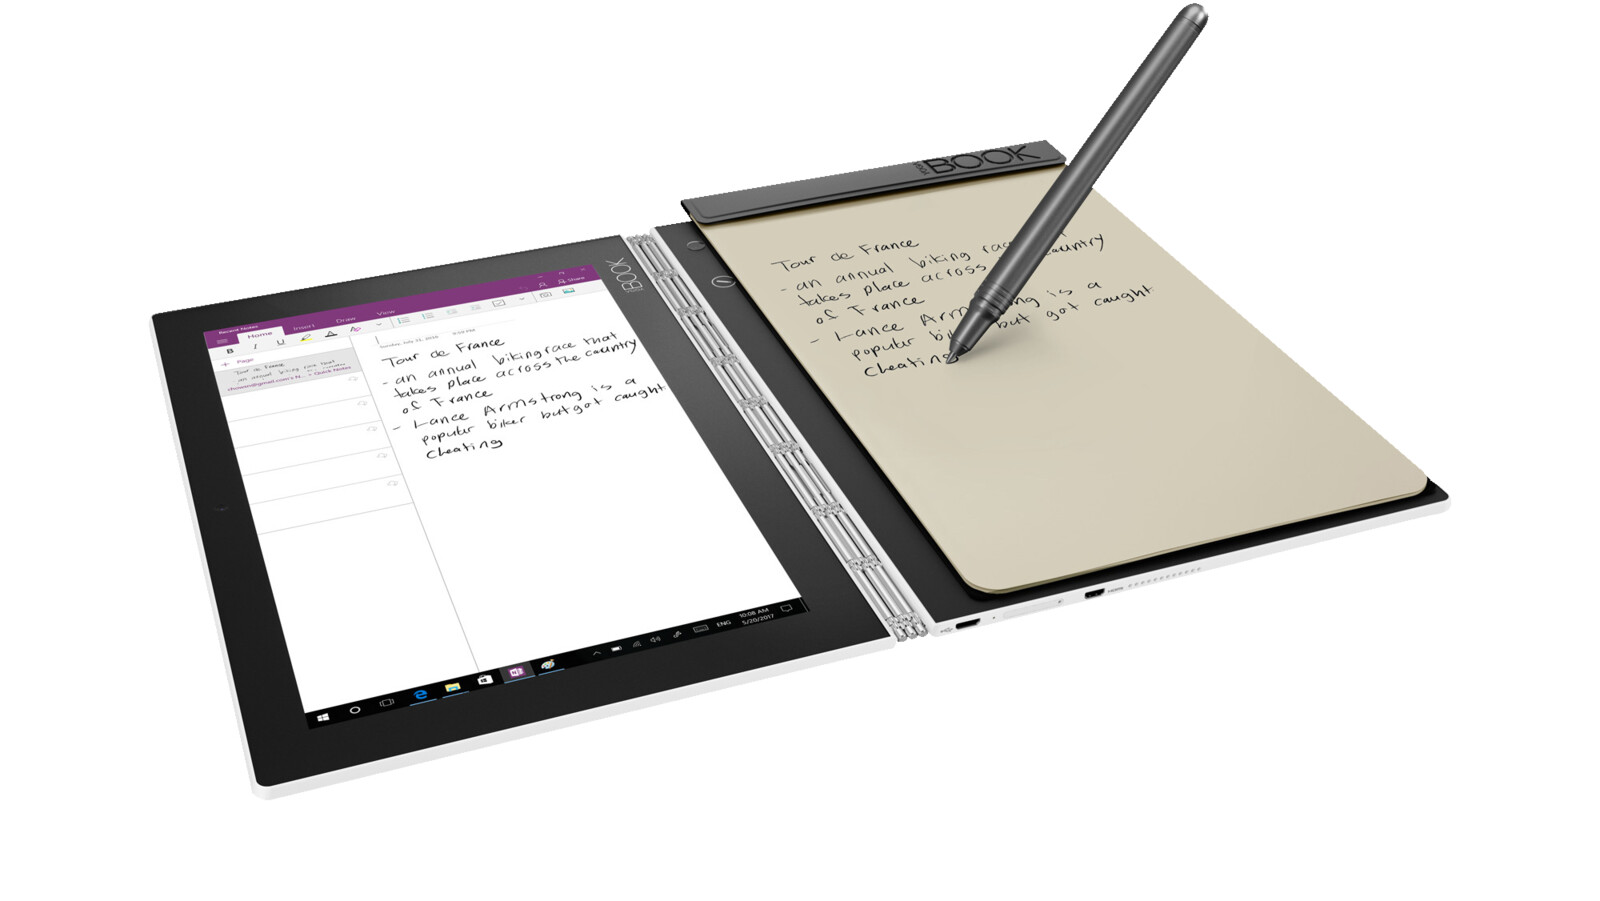 lenovo yoga book convertible mit 10 1 zoll display atom. Black Bedroom Furniture Sets. Home Design Ideas